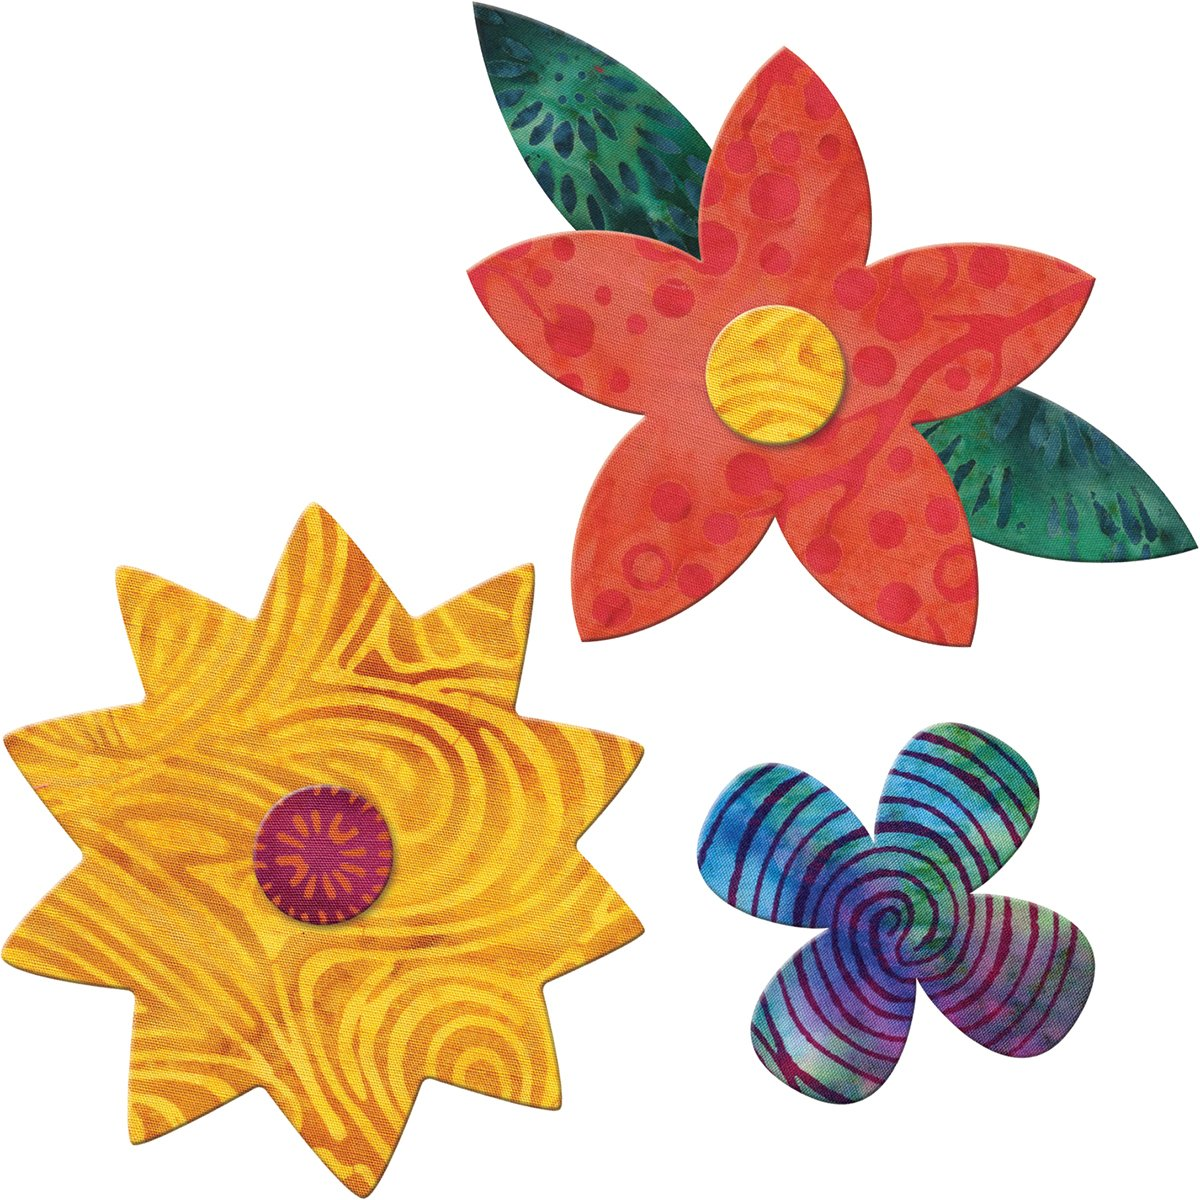 Go! Fabric Cutting Dies-Flower Bunch 3 Sizes